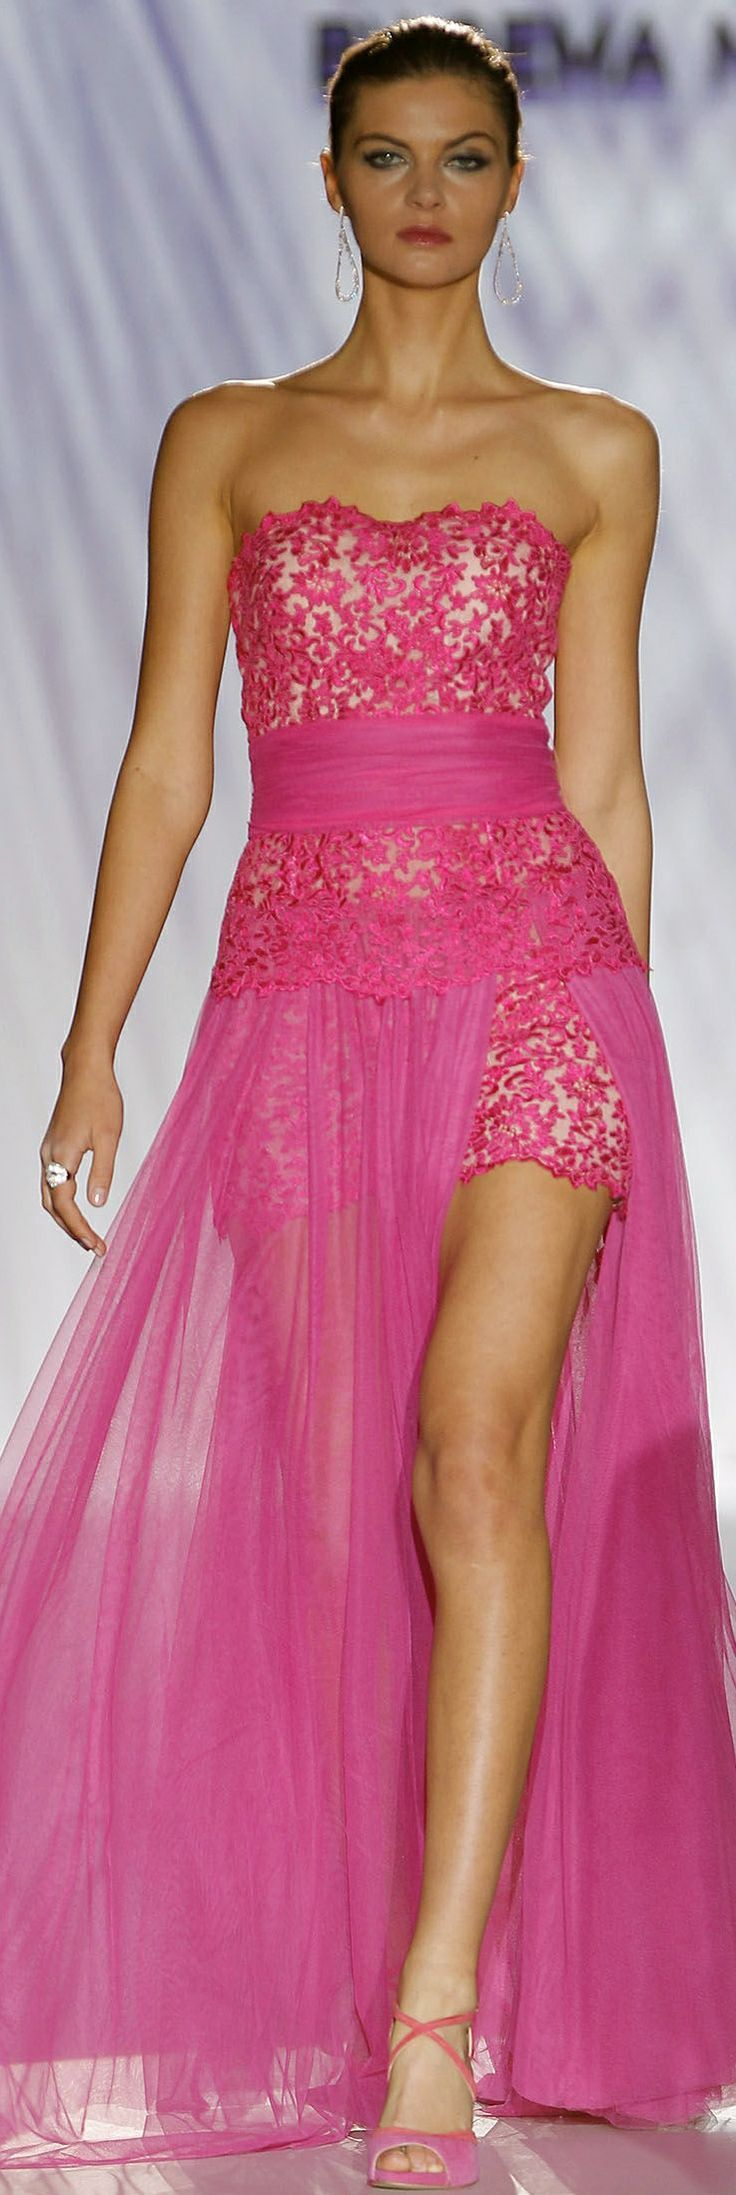 41 best Evening Gown images on Pinterest | Evening gowns, Formal ...